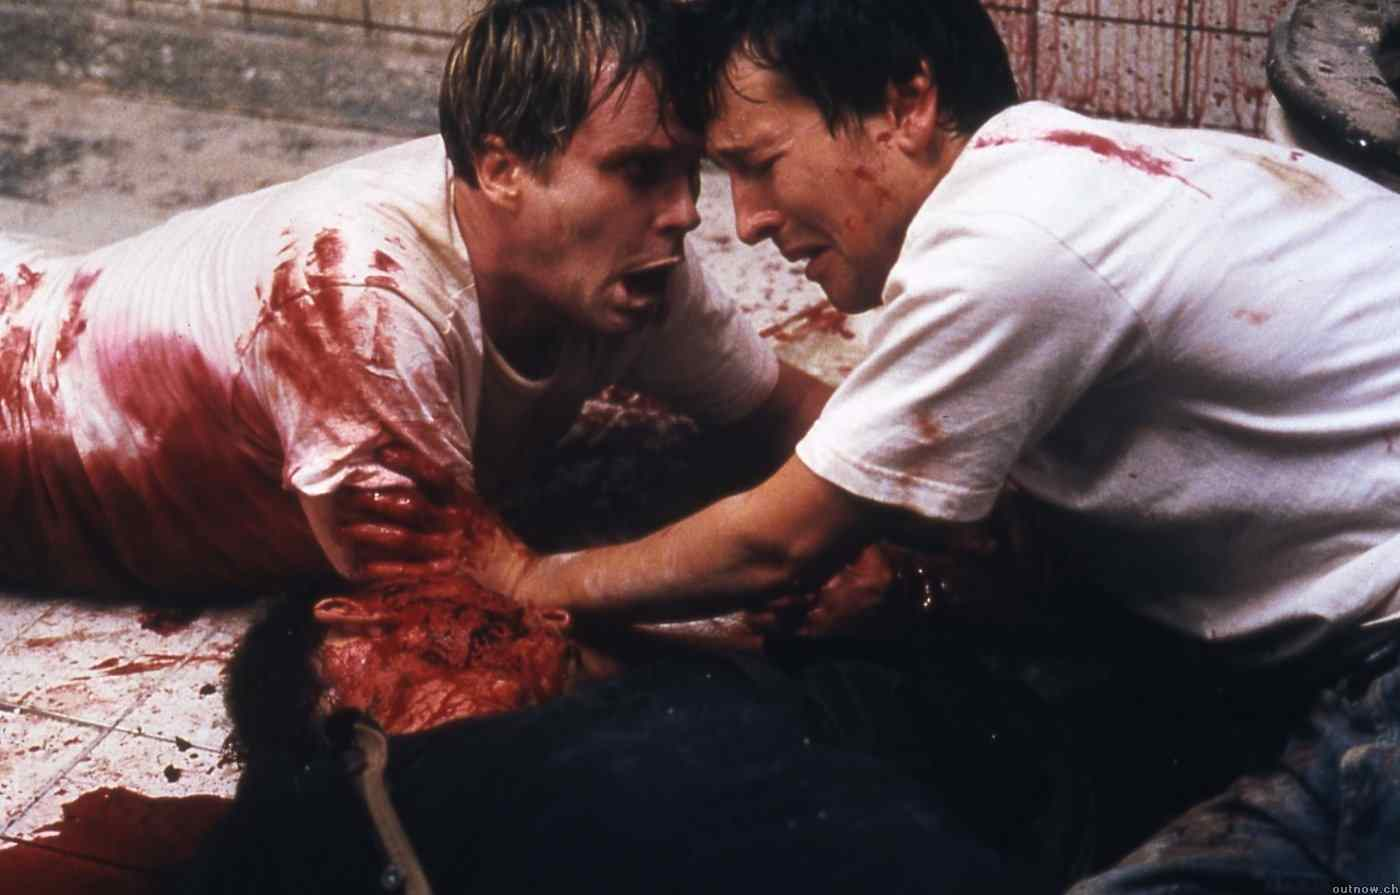 A photo of Leigh Whannell and Cary Elwes in James Wan's Saw.